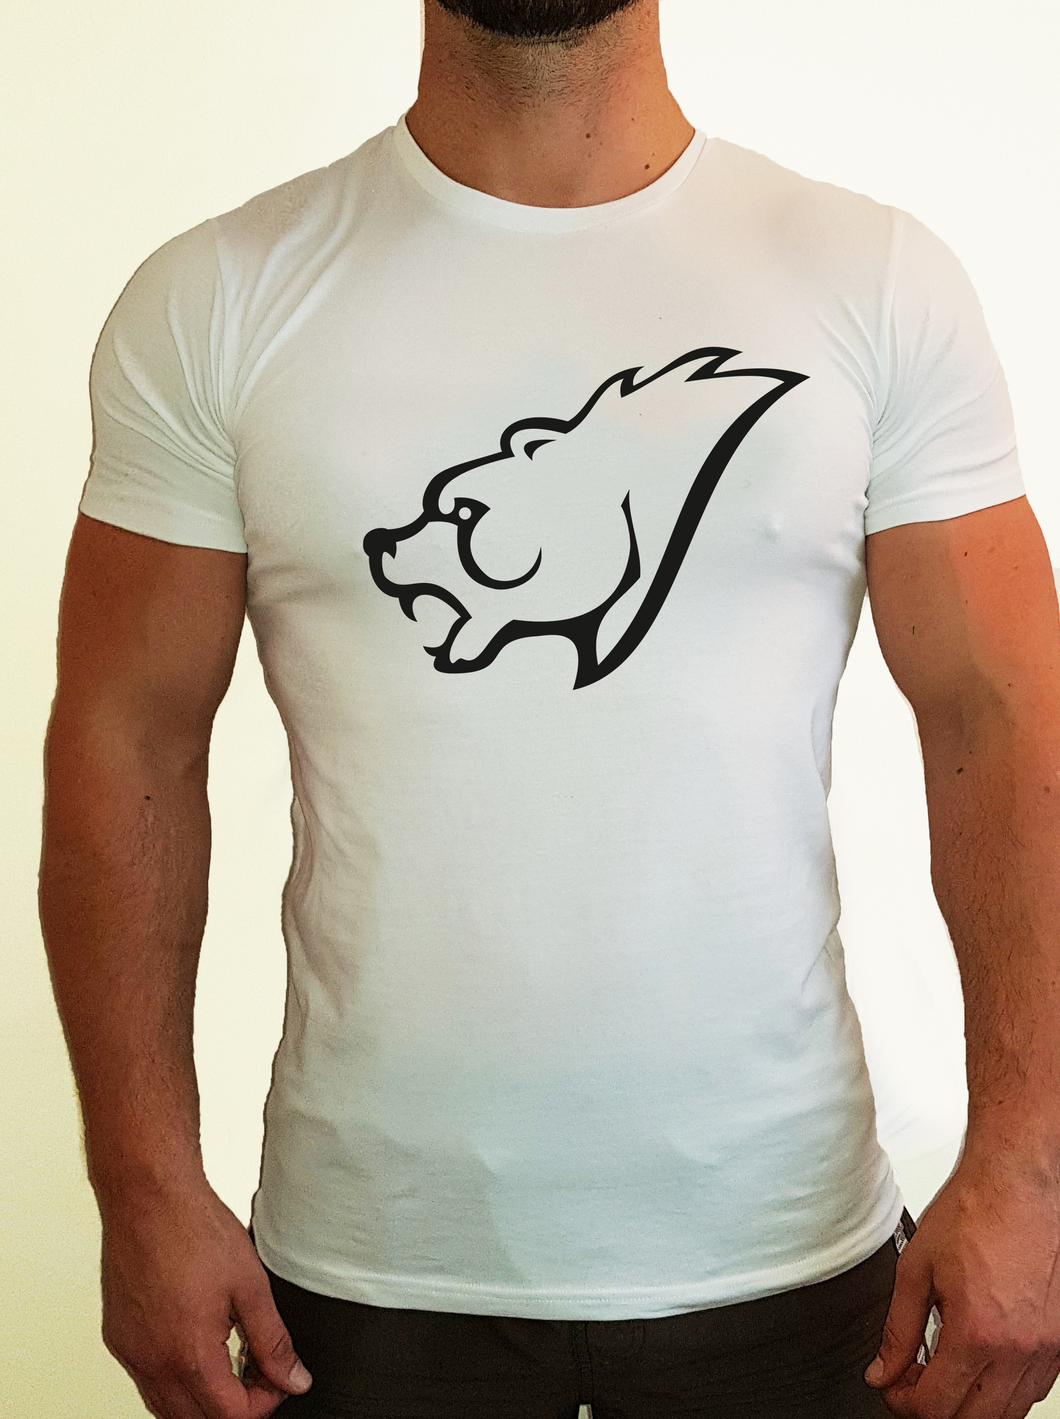 Muscle Fit T-Shirt - Big Bear Head